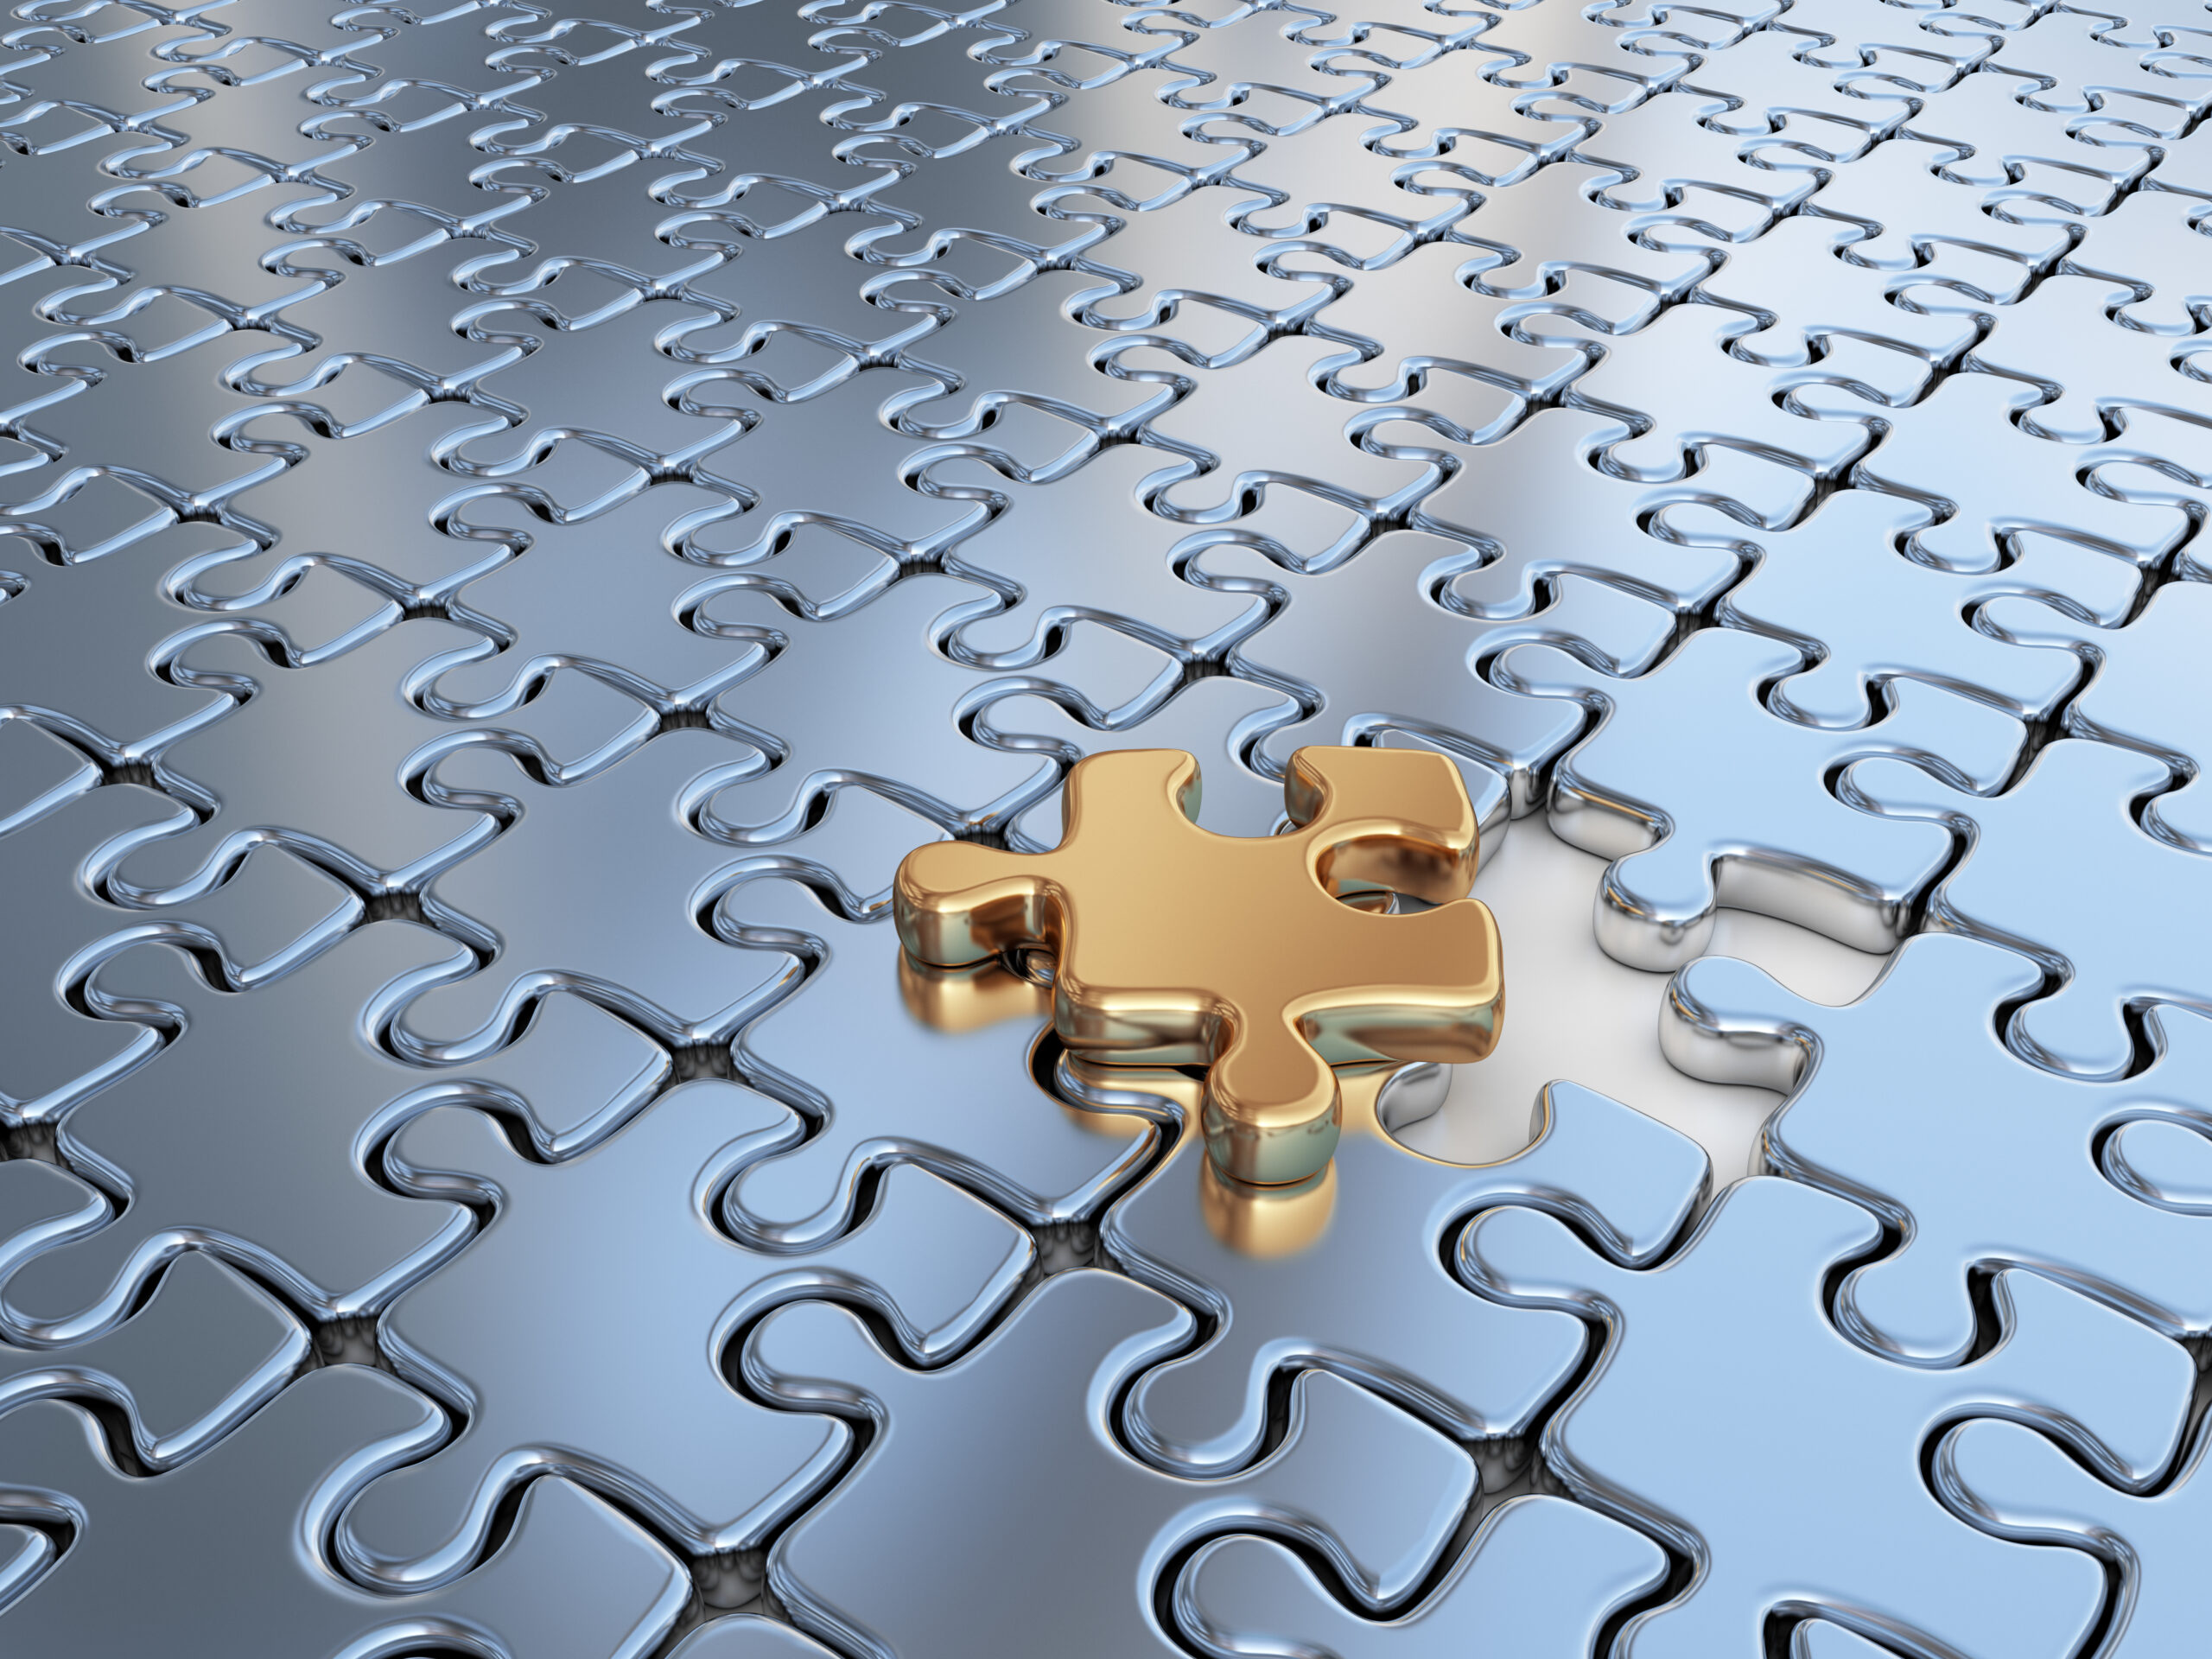 Puzzle 3D. Innovate, differentiate business background